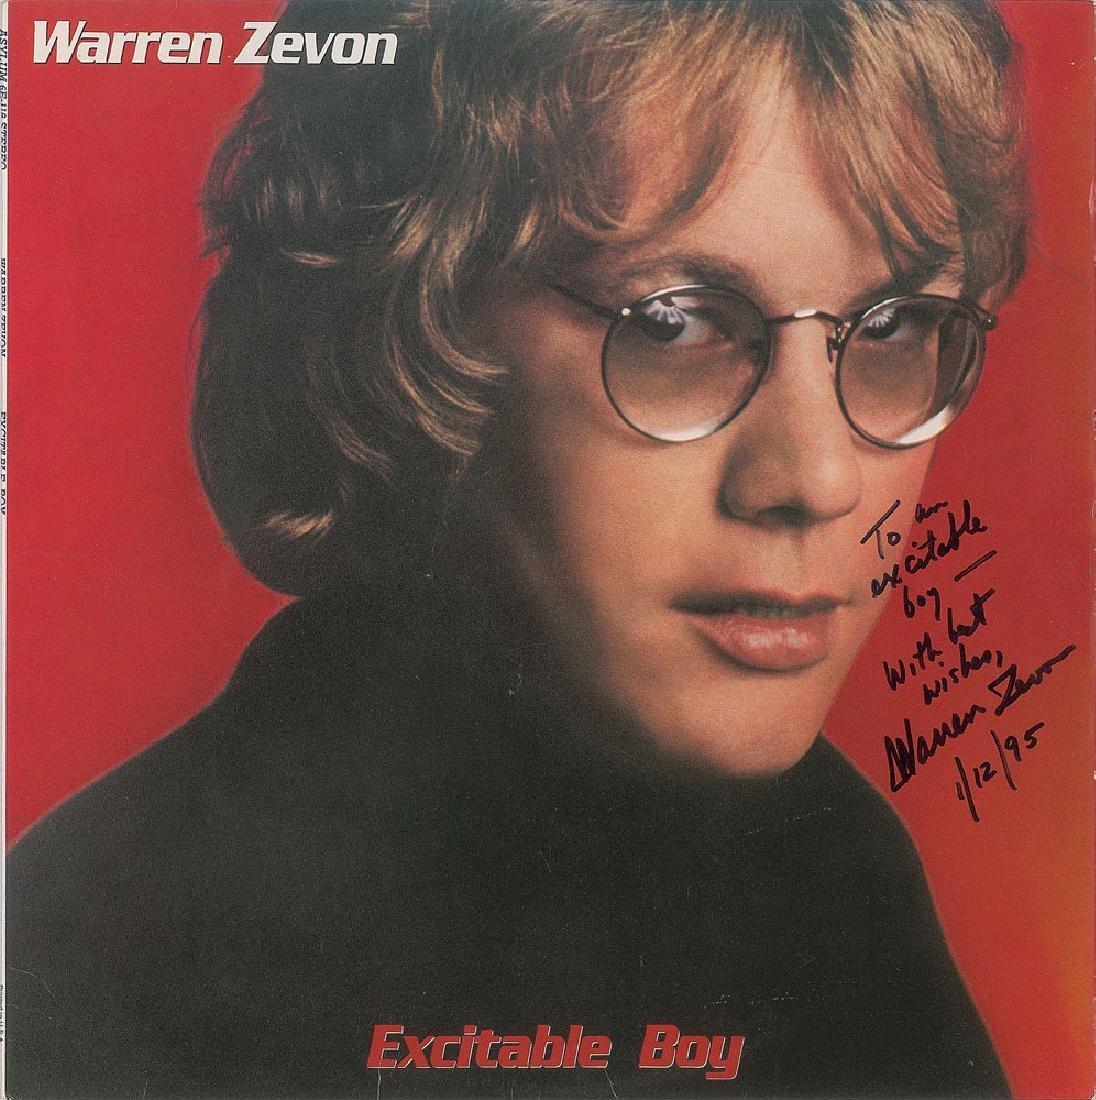 Warren Zevon Signed Album